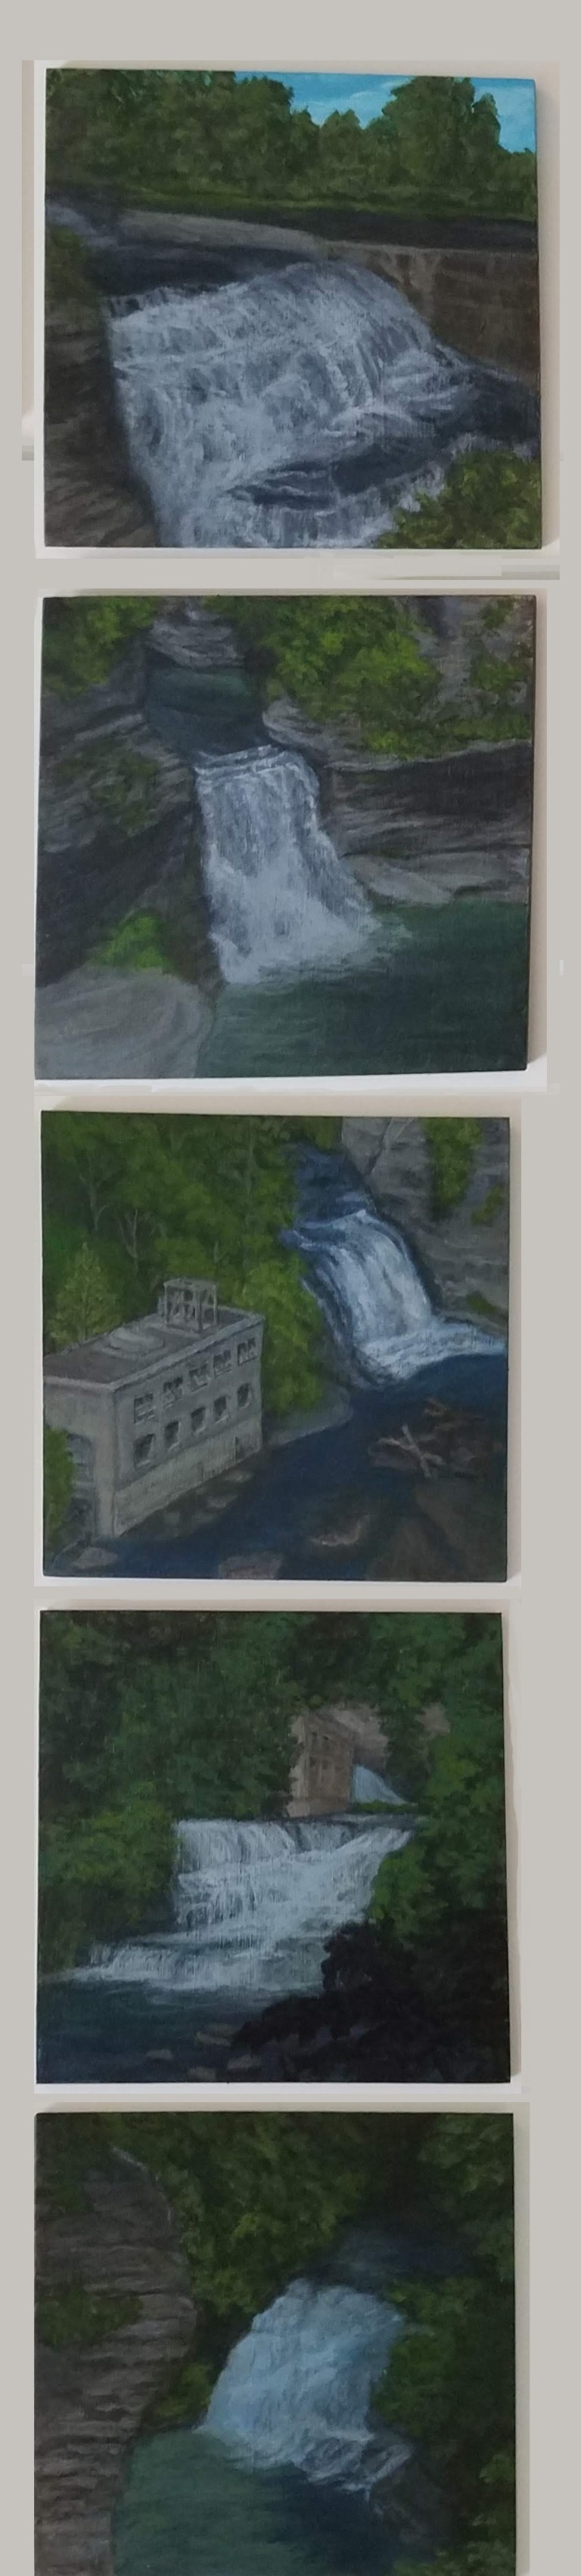 Fall Creek Gorge Collection by Laura Jaen Smith. 5 acrylic landscape paintings of waterfalls Ithaca from 50 NY Waterfalls Project.